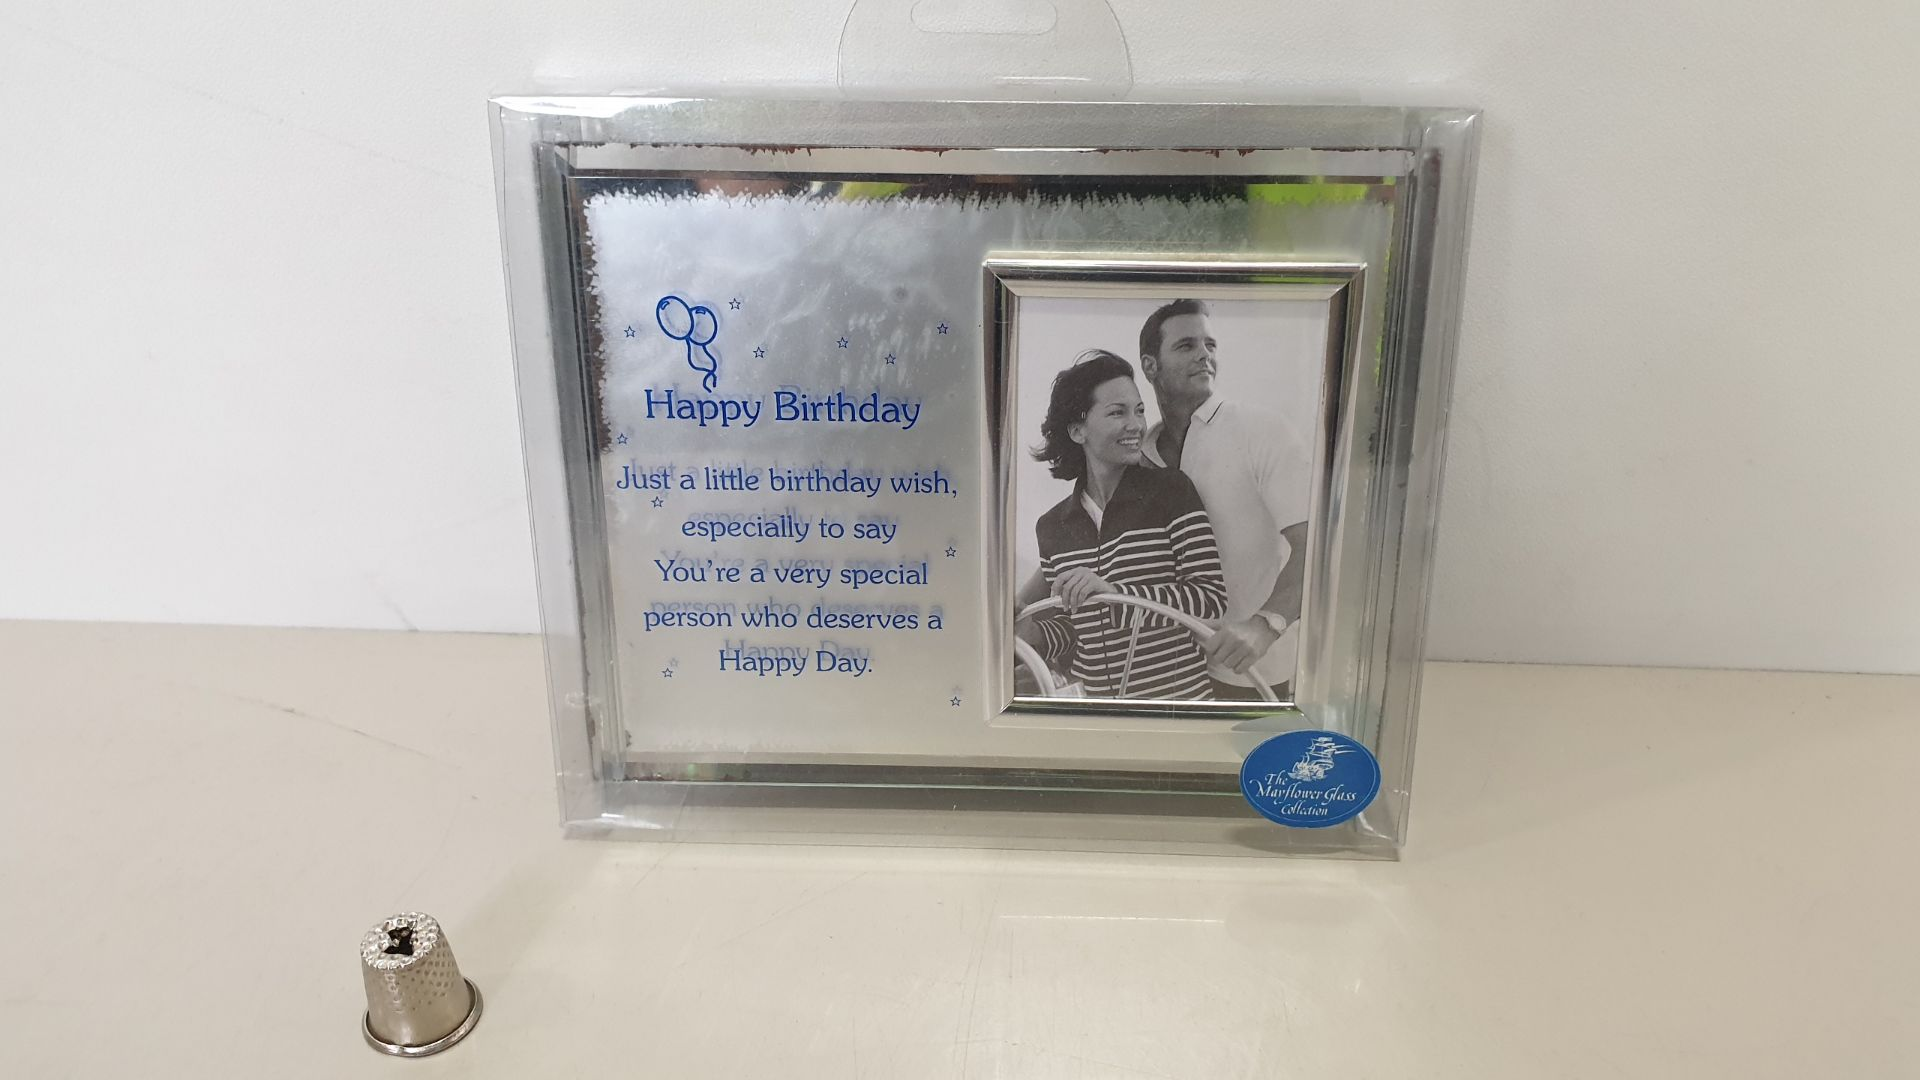 Lot 643 - 144 X BRAND NEW THE MAYFLOWER GLASS COLLECTION HAPPY BIRTHDAY MESSAGE FRAME - IN 3 BOXES